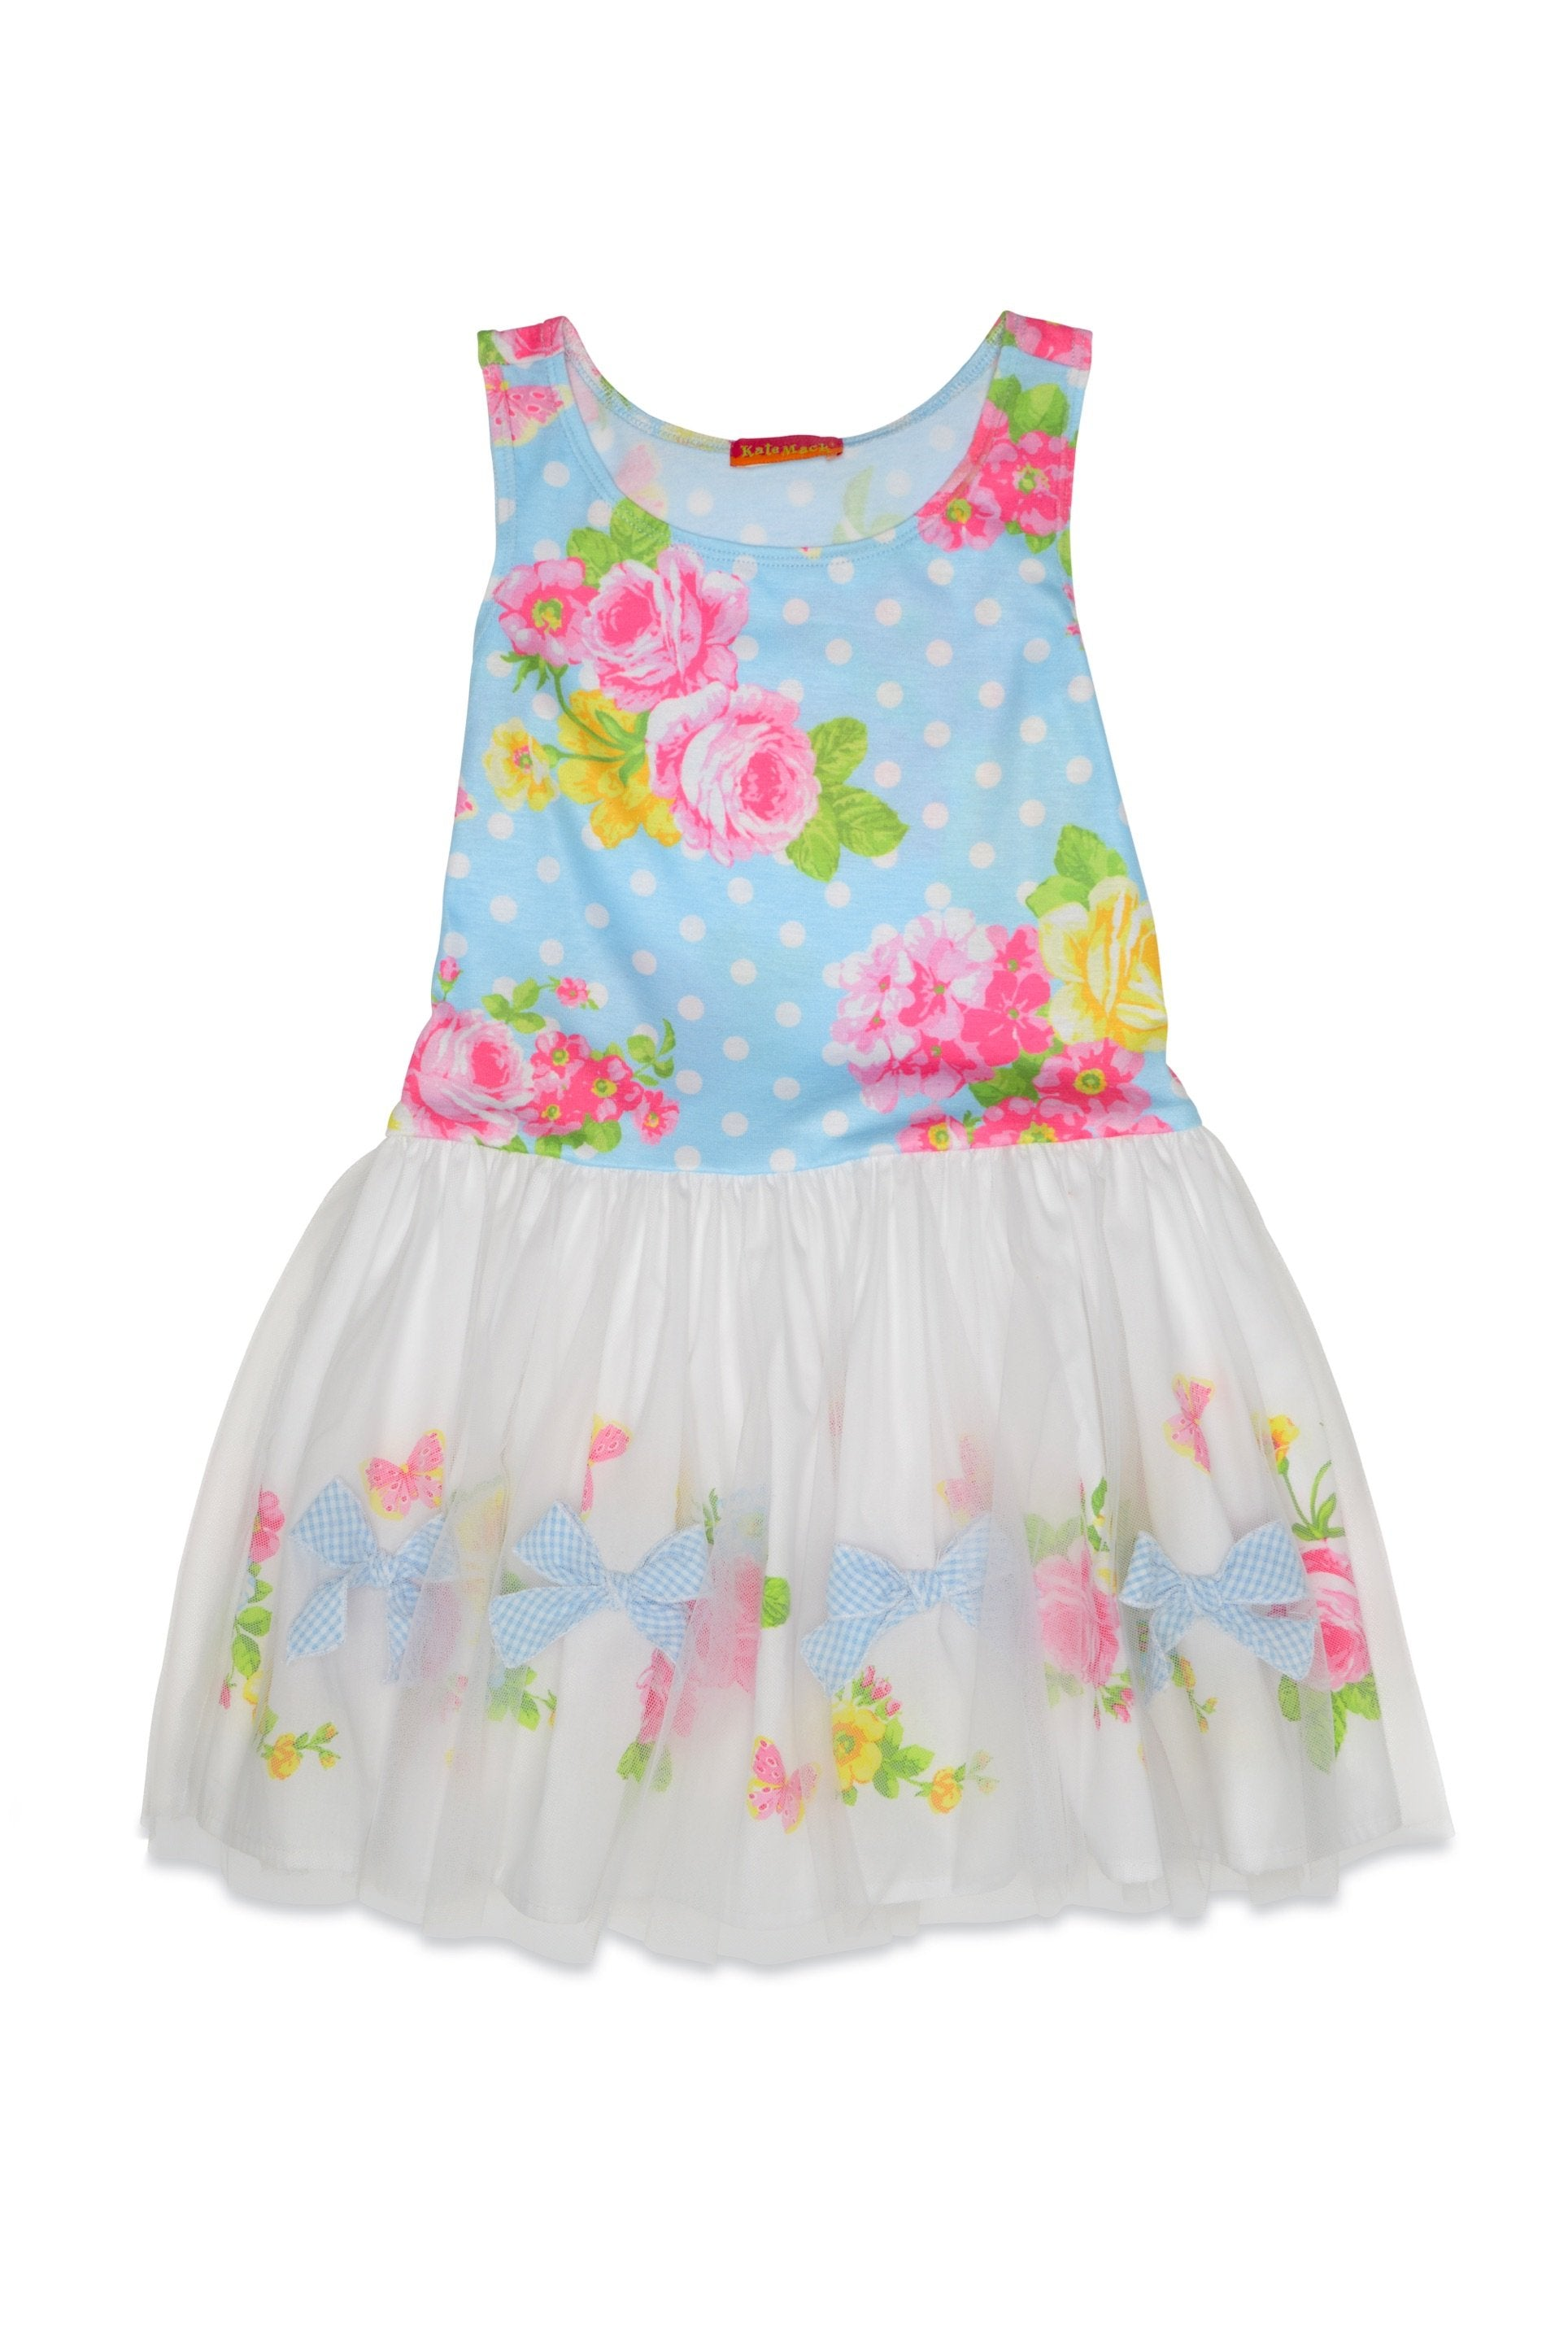 6e6637102c88 Kate Mack and Biscotti Blue Pink and White Drop Waste Dress